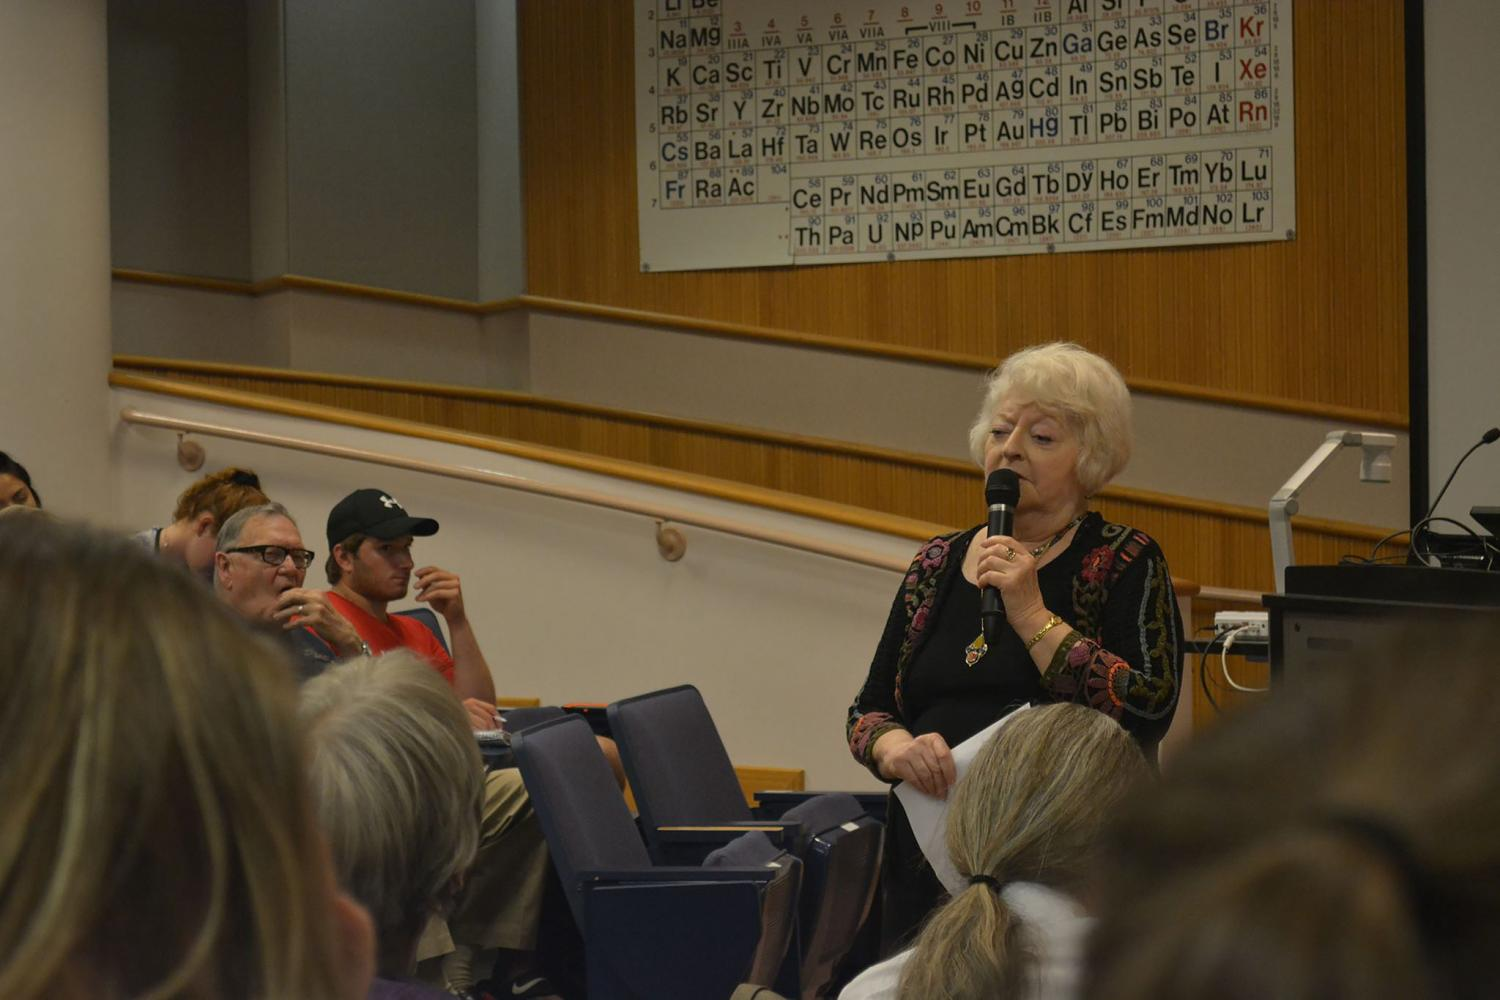 Retired Professor Rosine Tenenbaum speaks to community members and WSU students on Wednesday, Aug. 30 in Stark 103 auditorium about Nazism today and in the past.